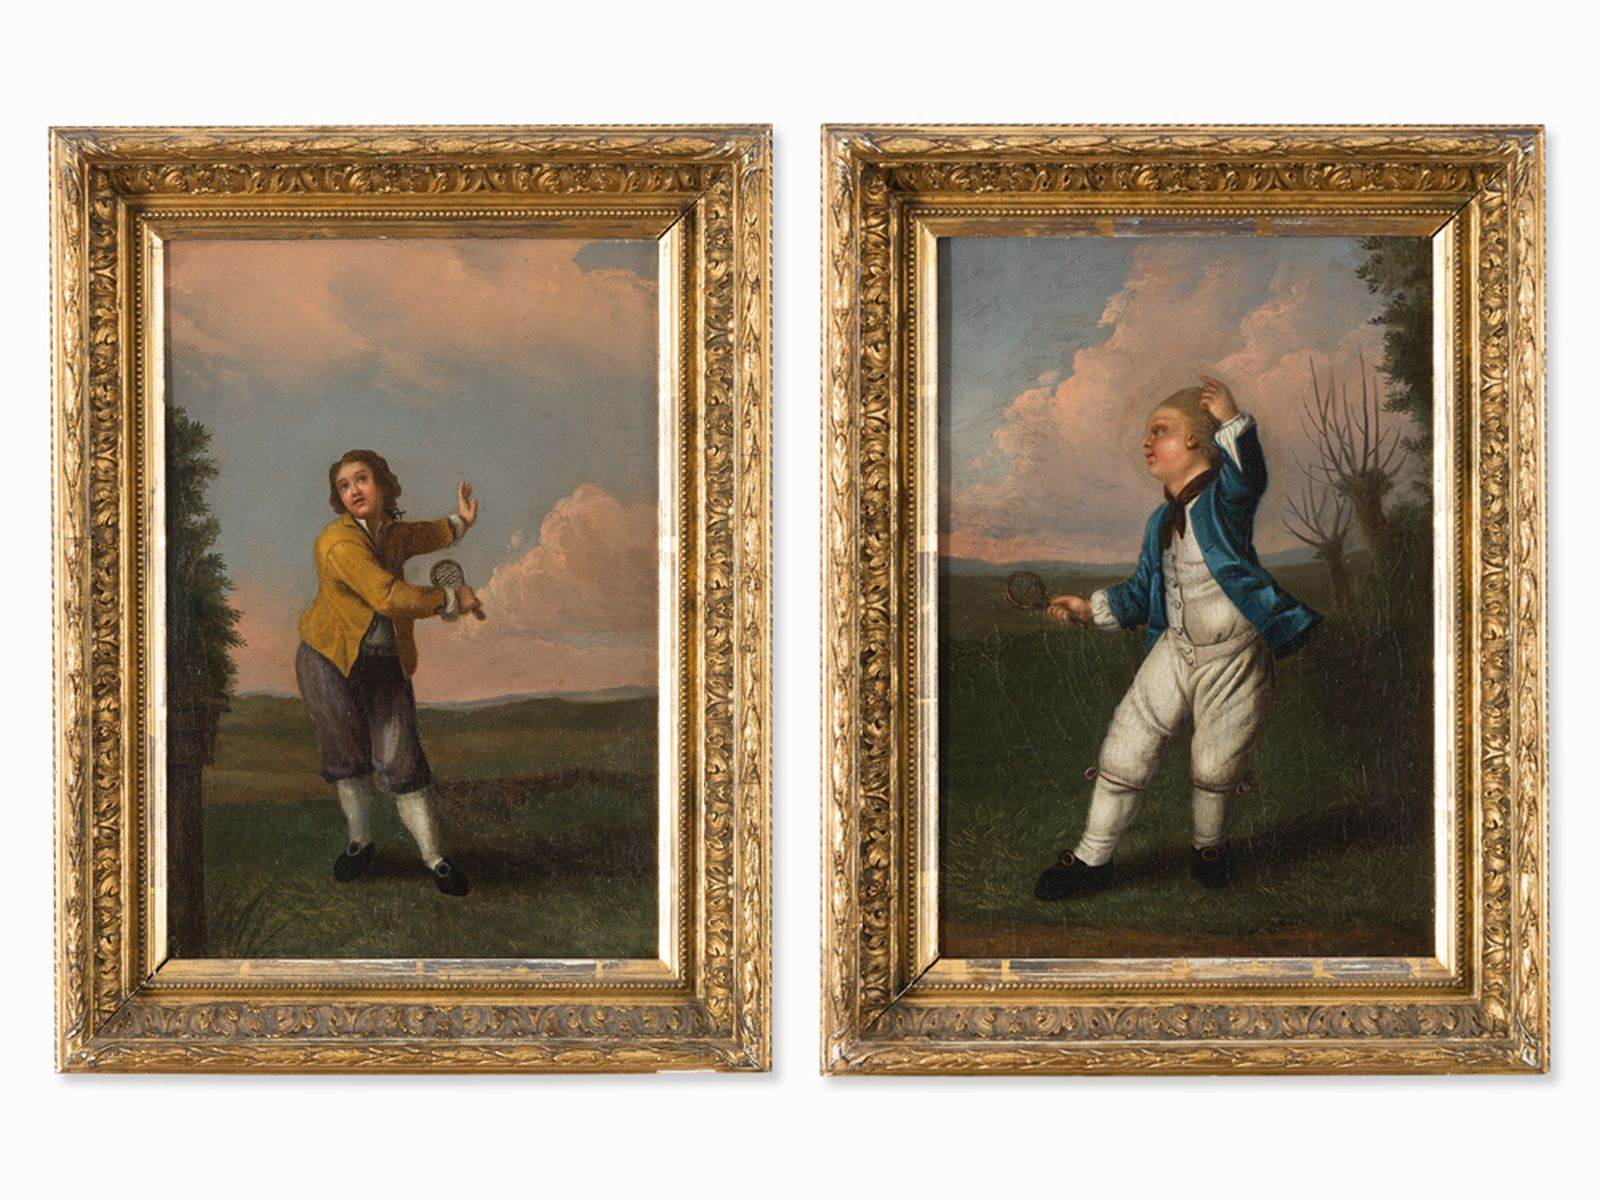 #26 English School, Late 18th C., Badminton Players| Englische Schule, Image